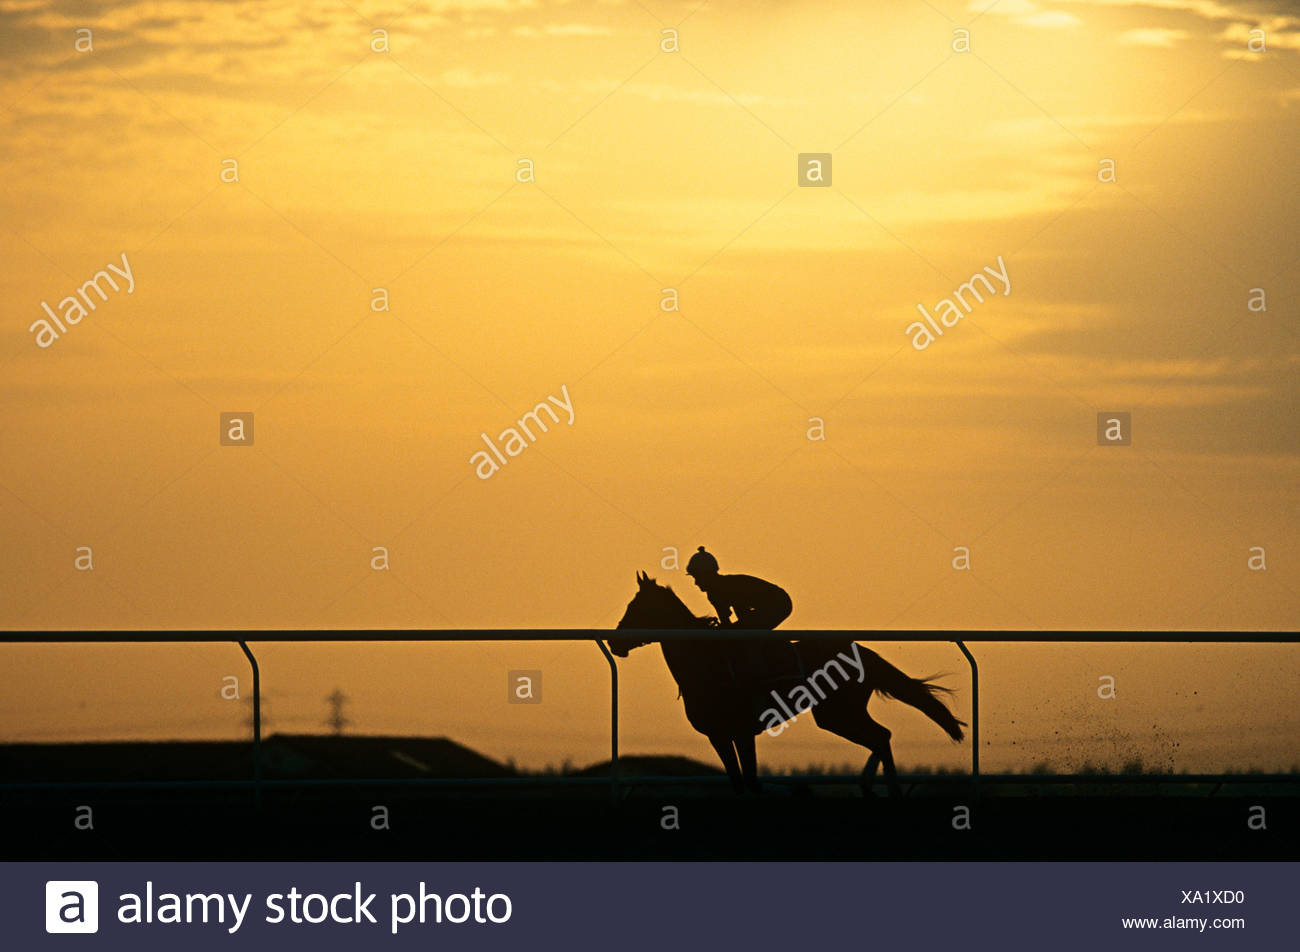 A silhouette of a jockey riding a horse Stock Photo